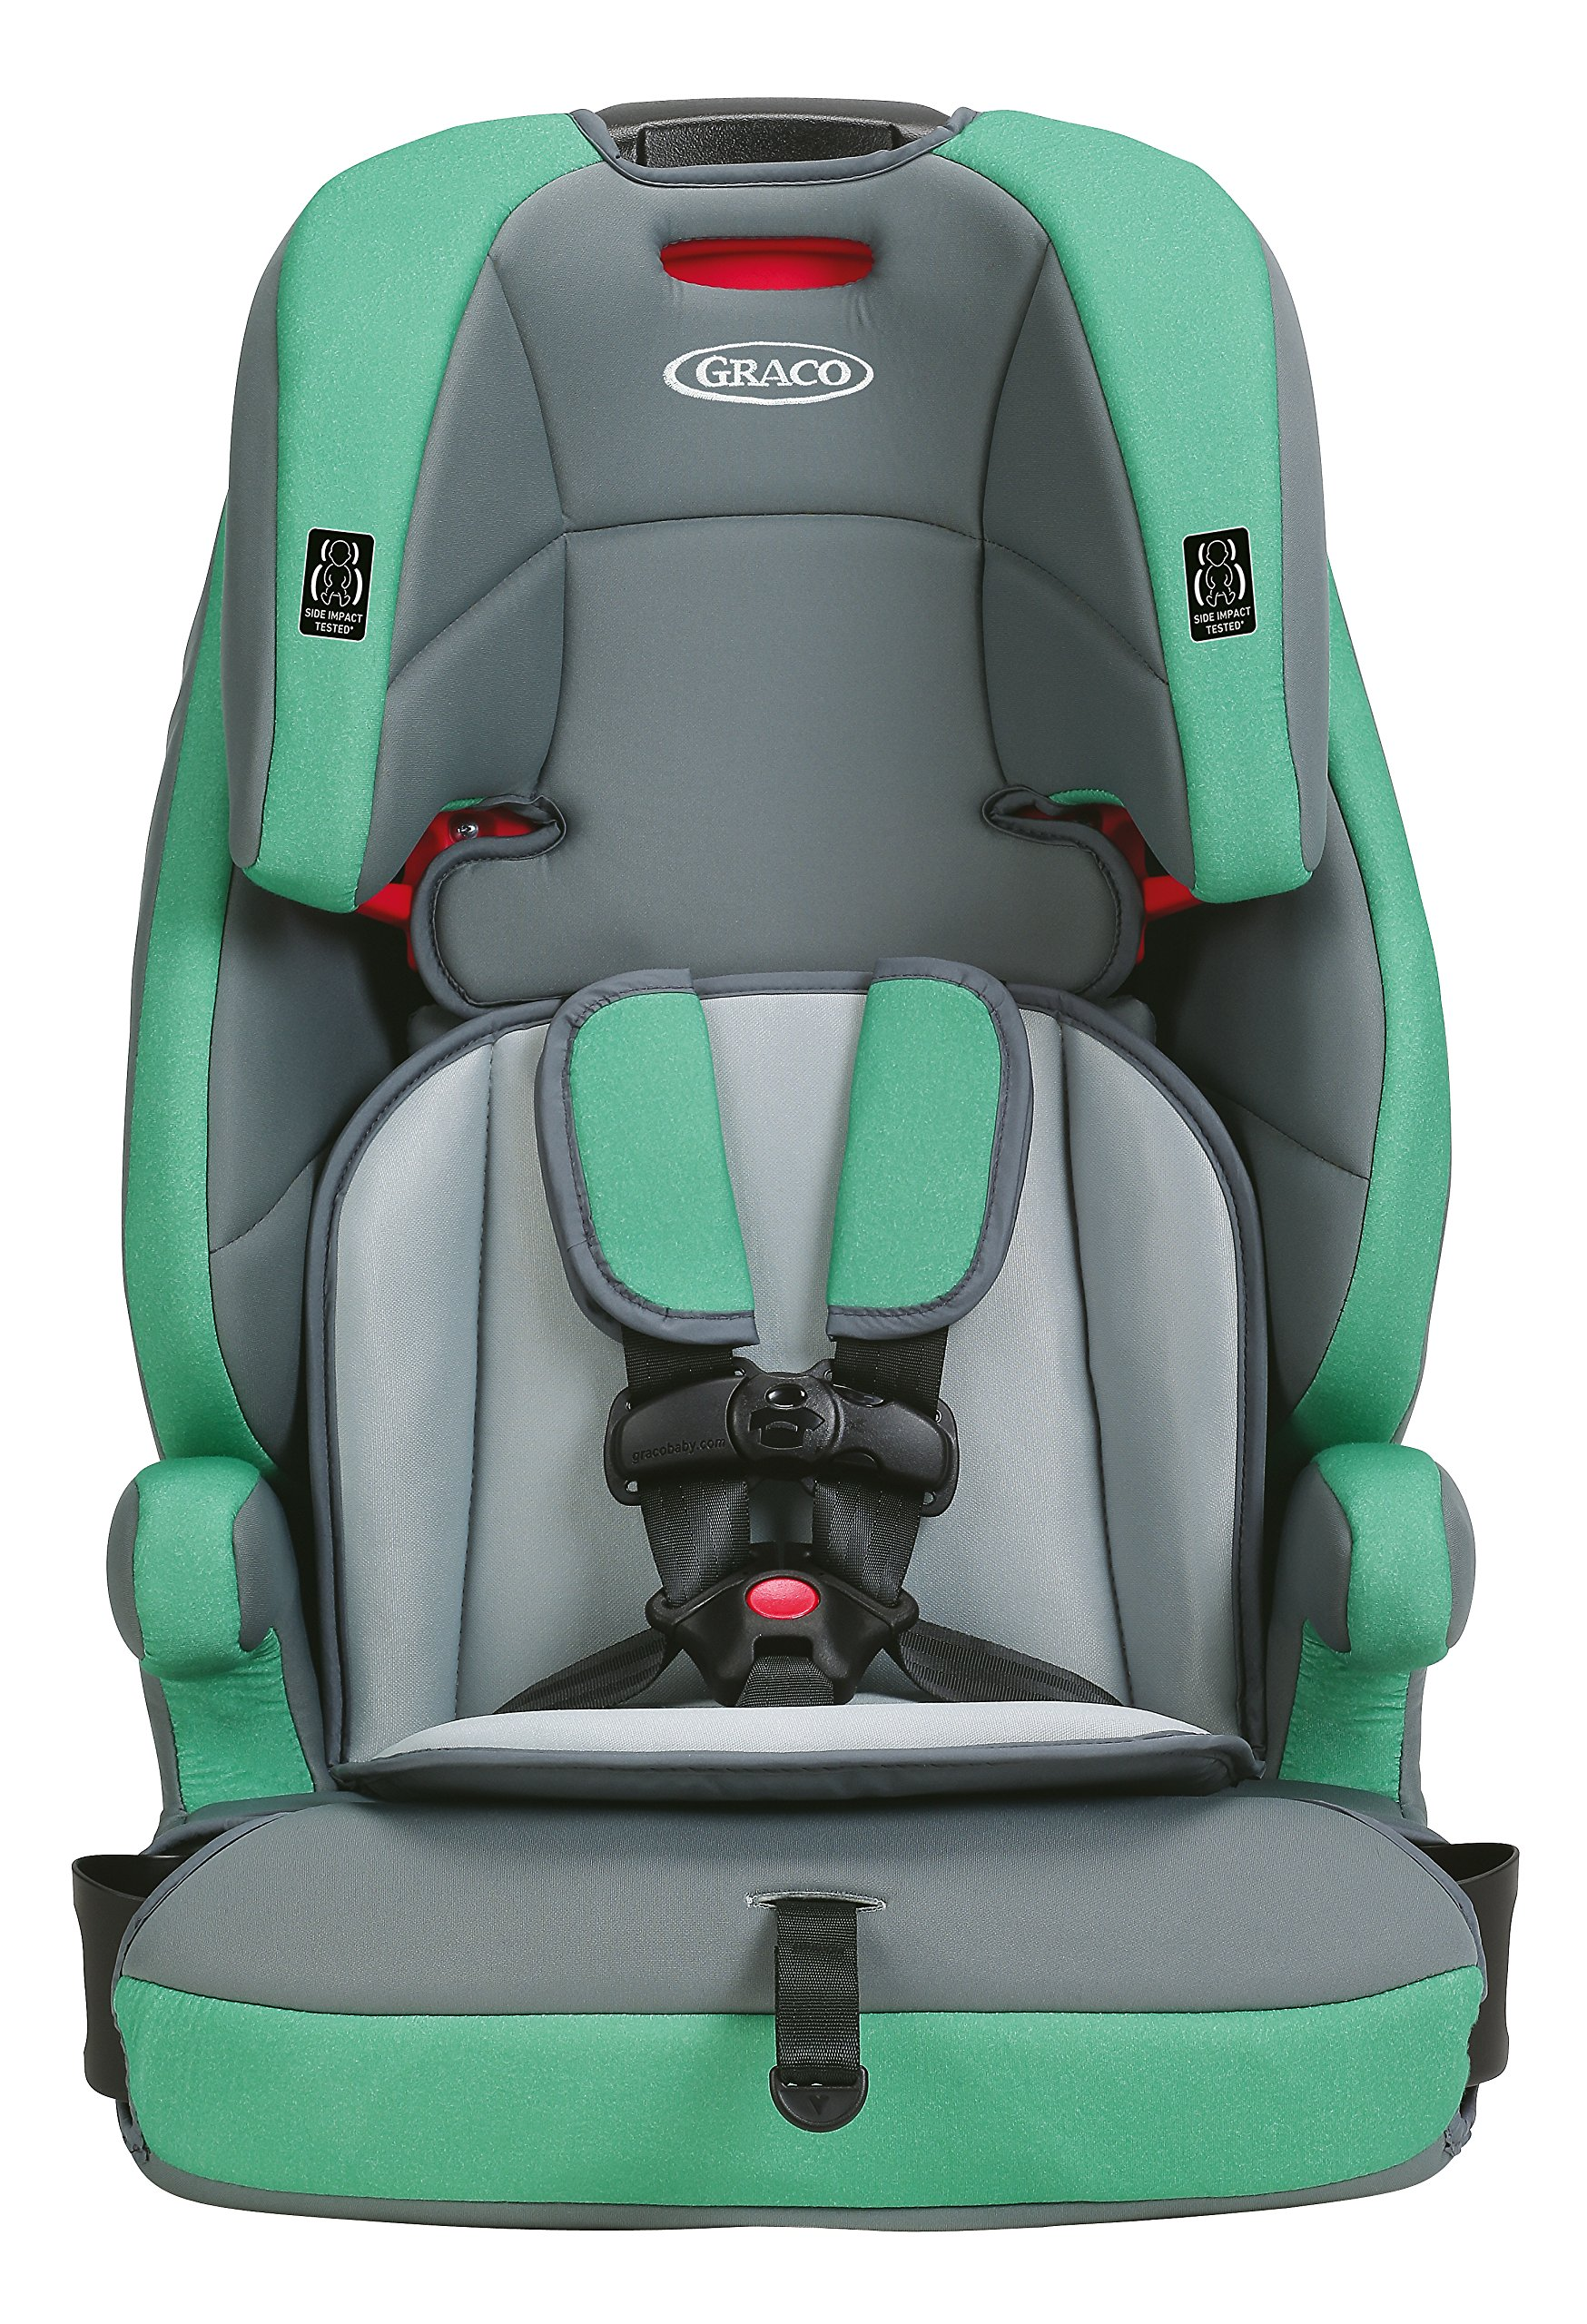 Graco Tranzitions 3-in-1 Harness Booster Convertible Car Seat, Basin by Graco (Image #2)